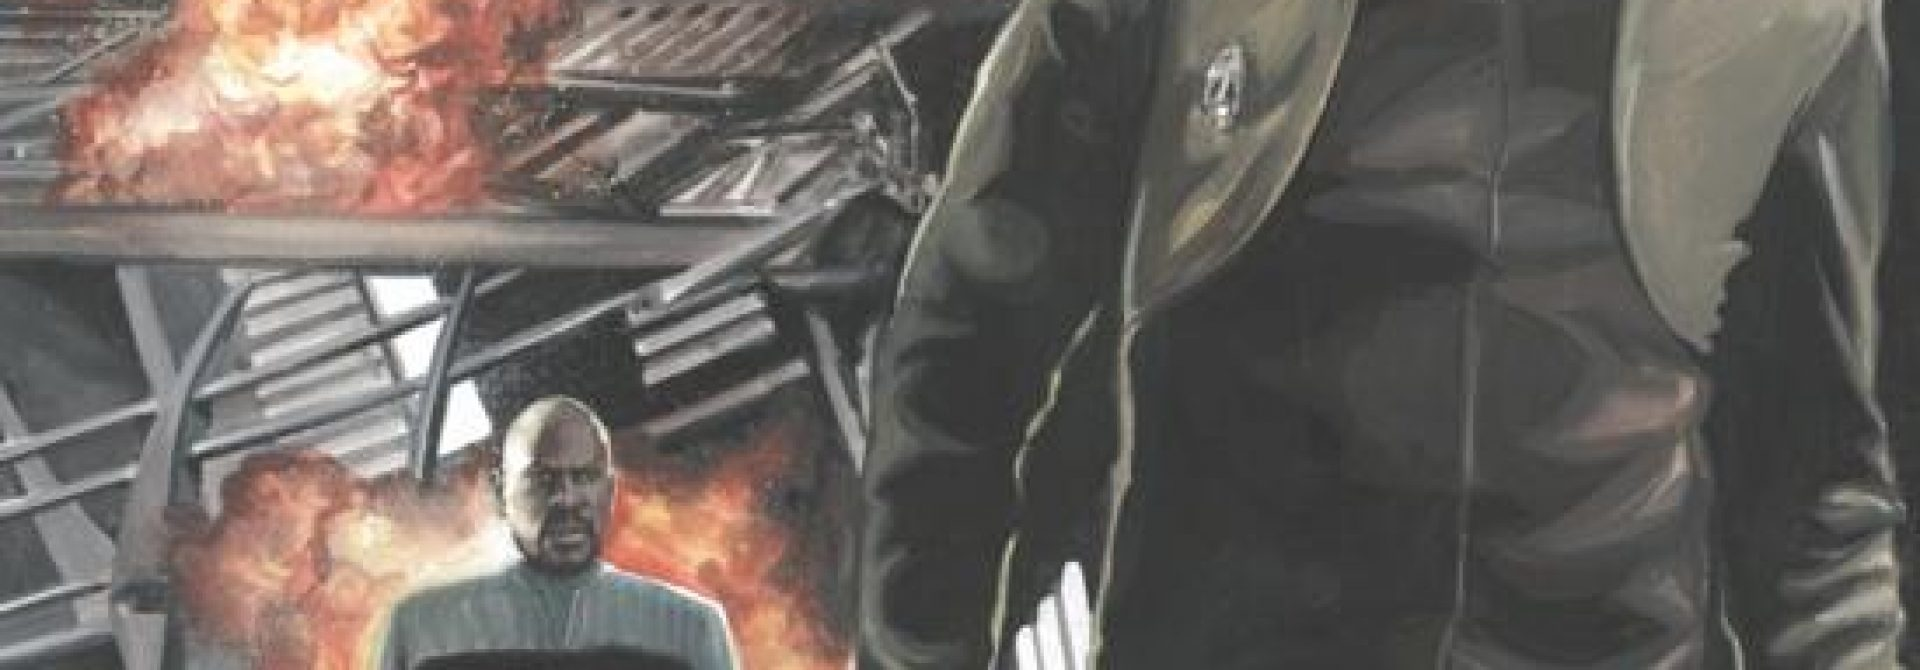 STAR TREK: DEEP SPACE NINE Makes its Long-Awaited Return to Comics